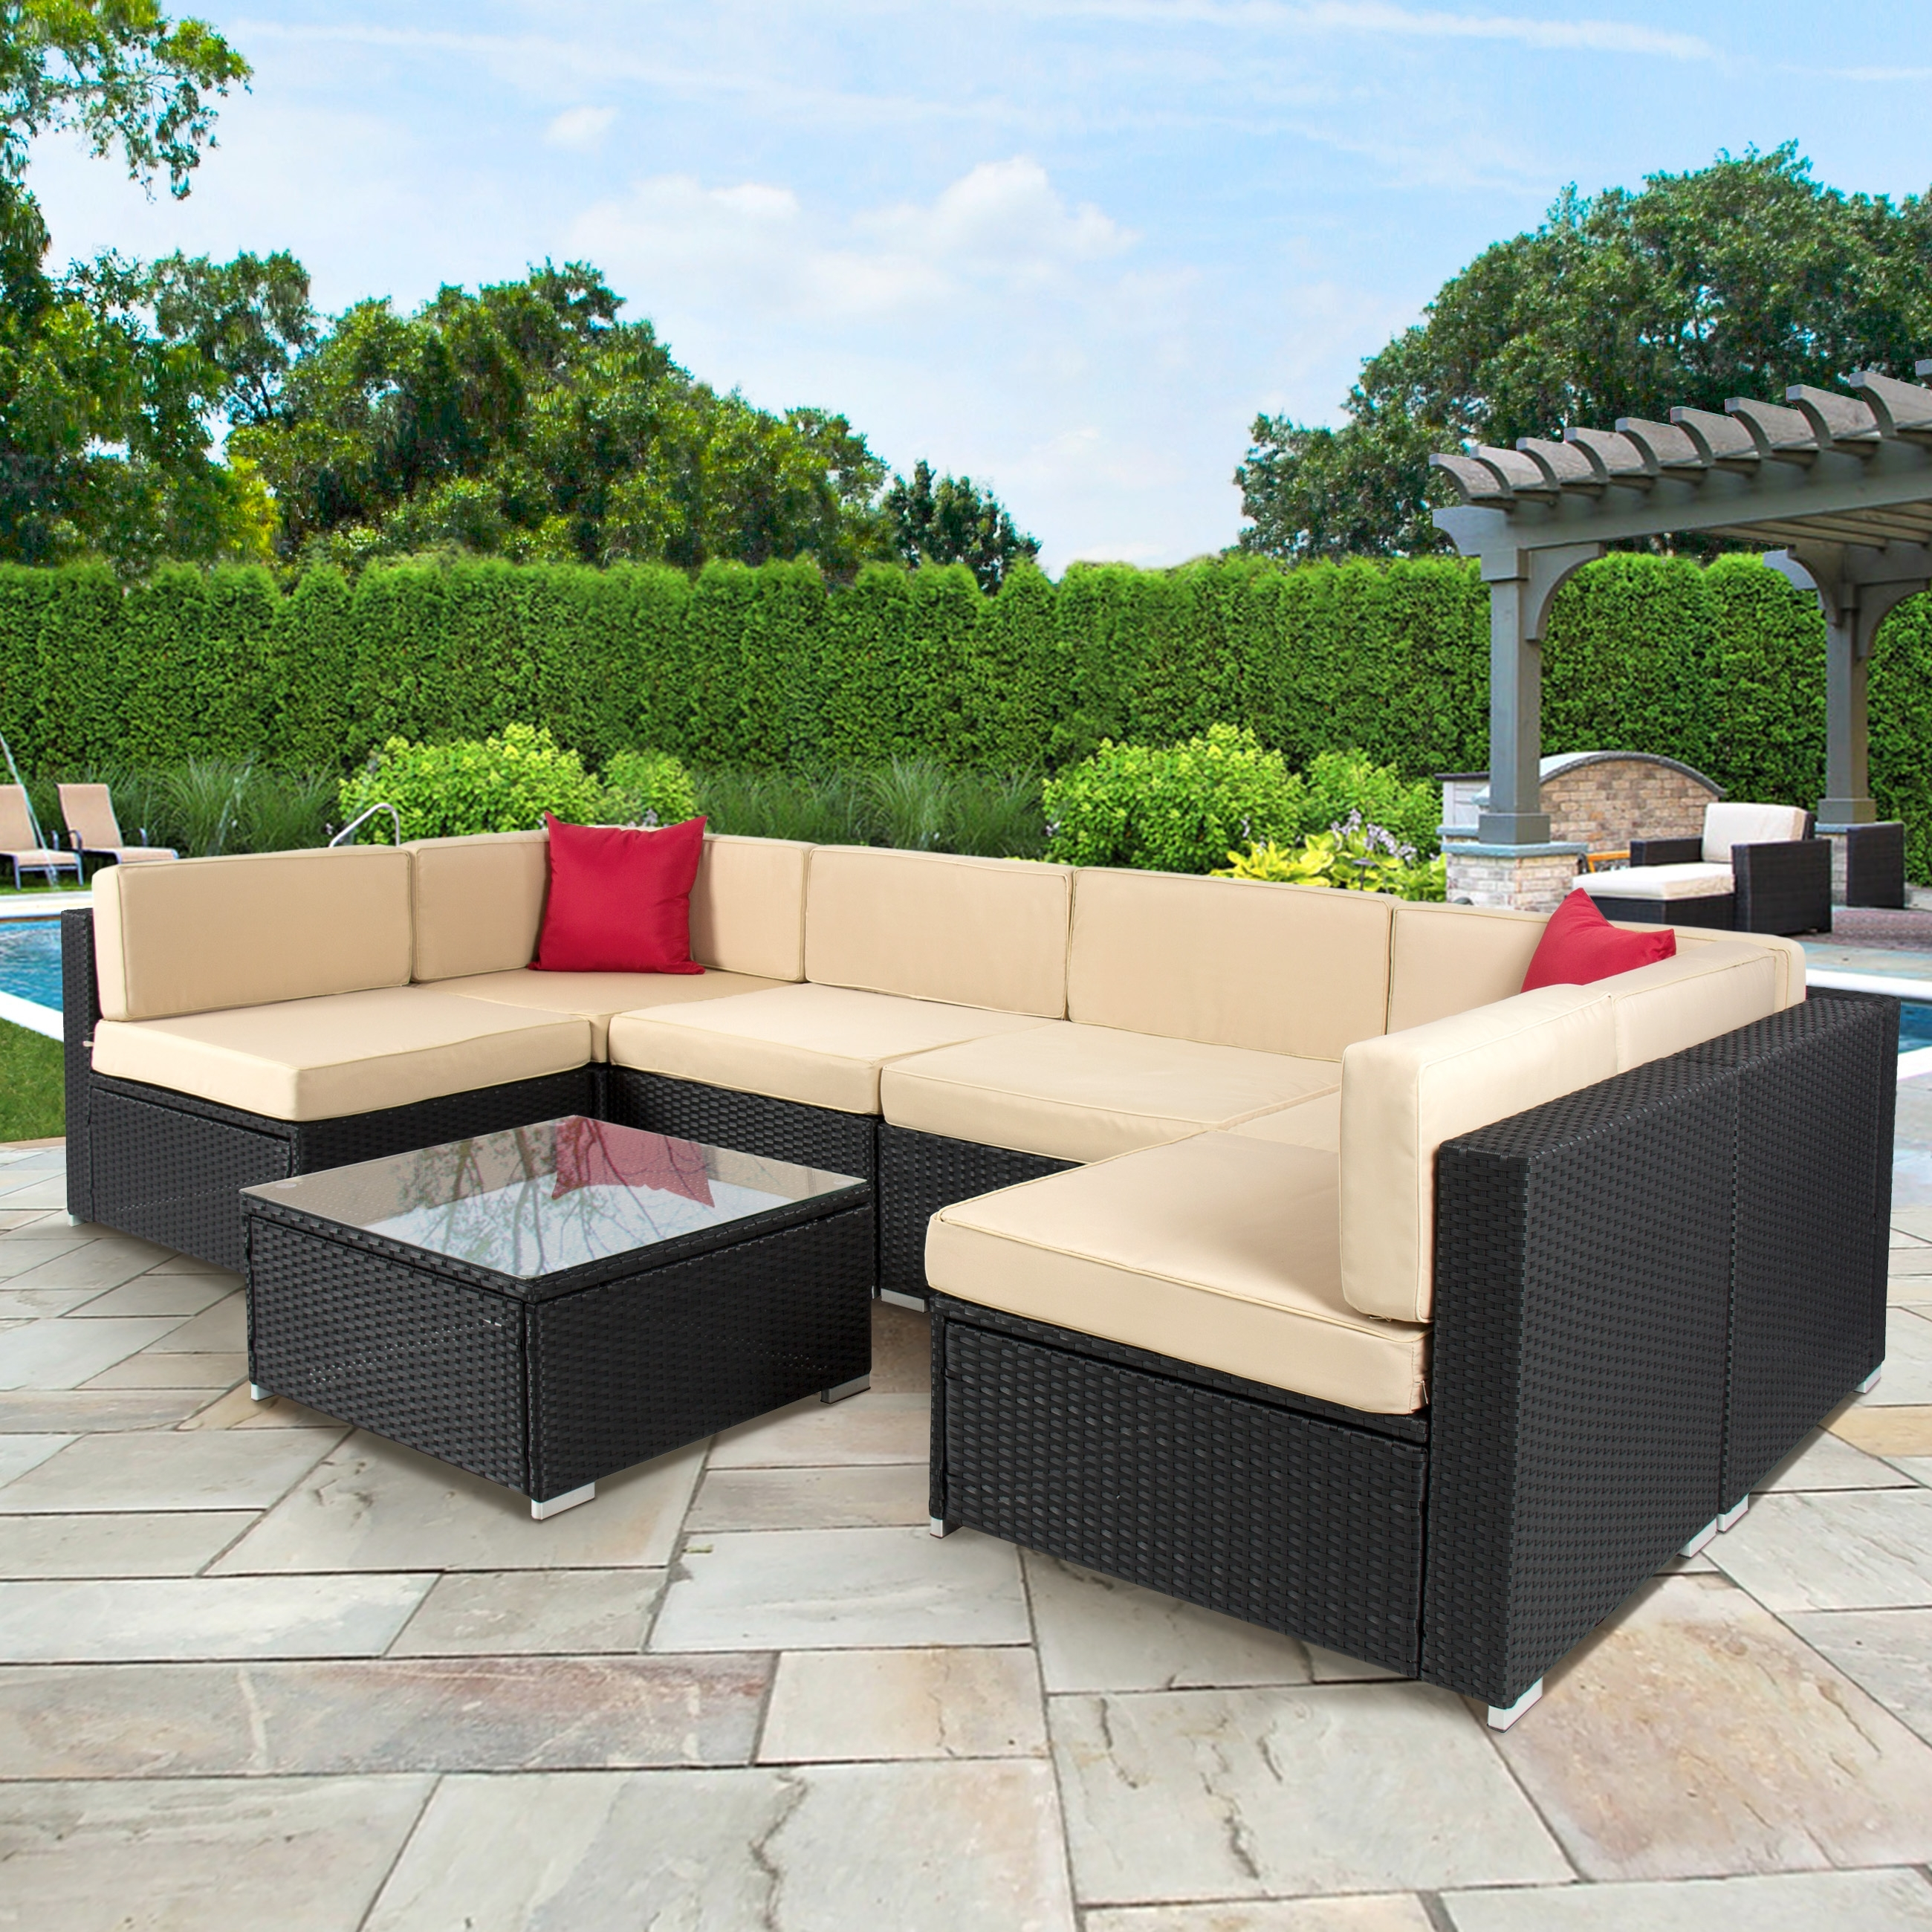 Jewel Patio Umbrellas Within Current How To Choose The Right Types Of Outdoor Patio Furniture? – Blogbeen (View 9 of 20)